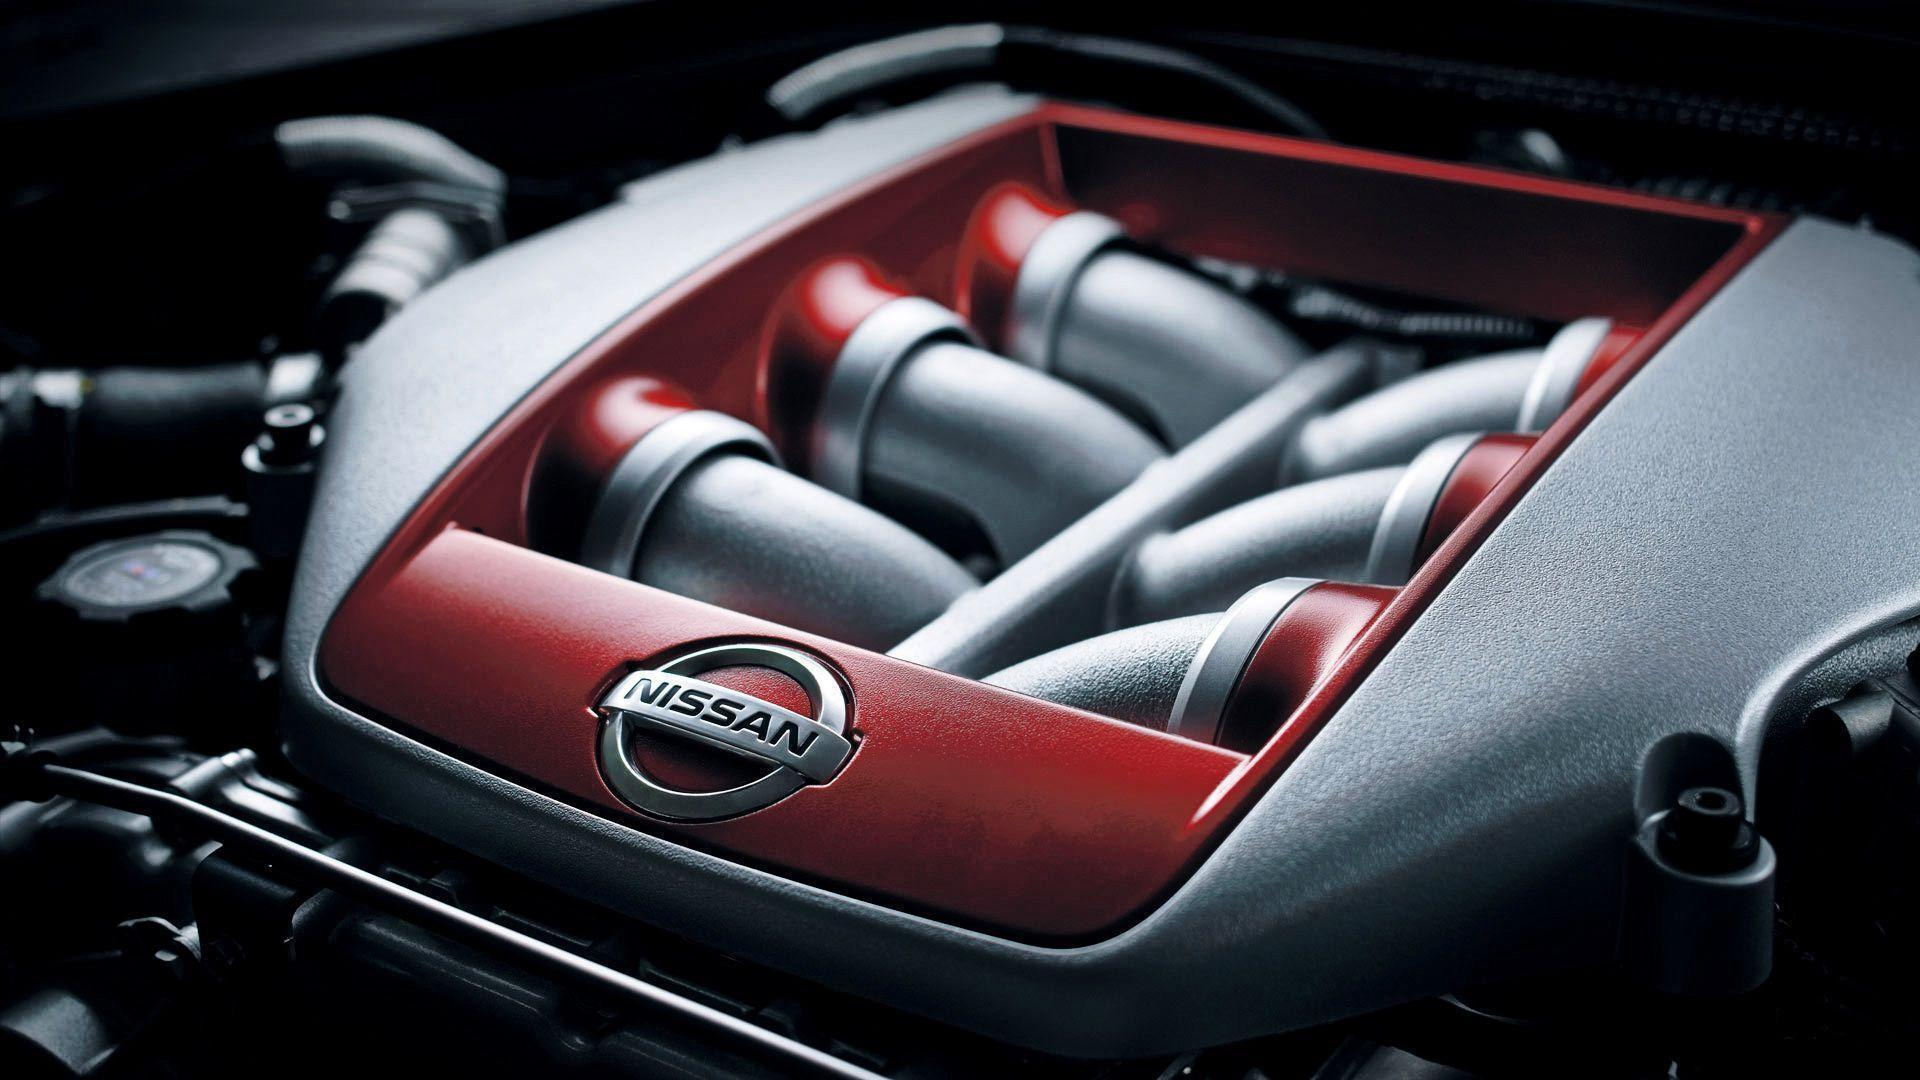 Perfect 40 HD Engine Wallpapers, Engine Backgrounds U0026 Engine Images For .